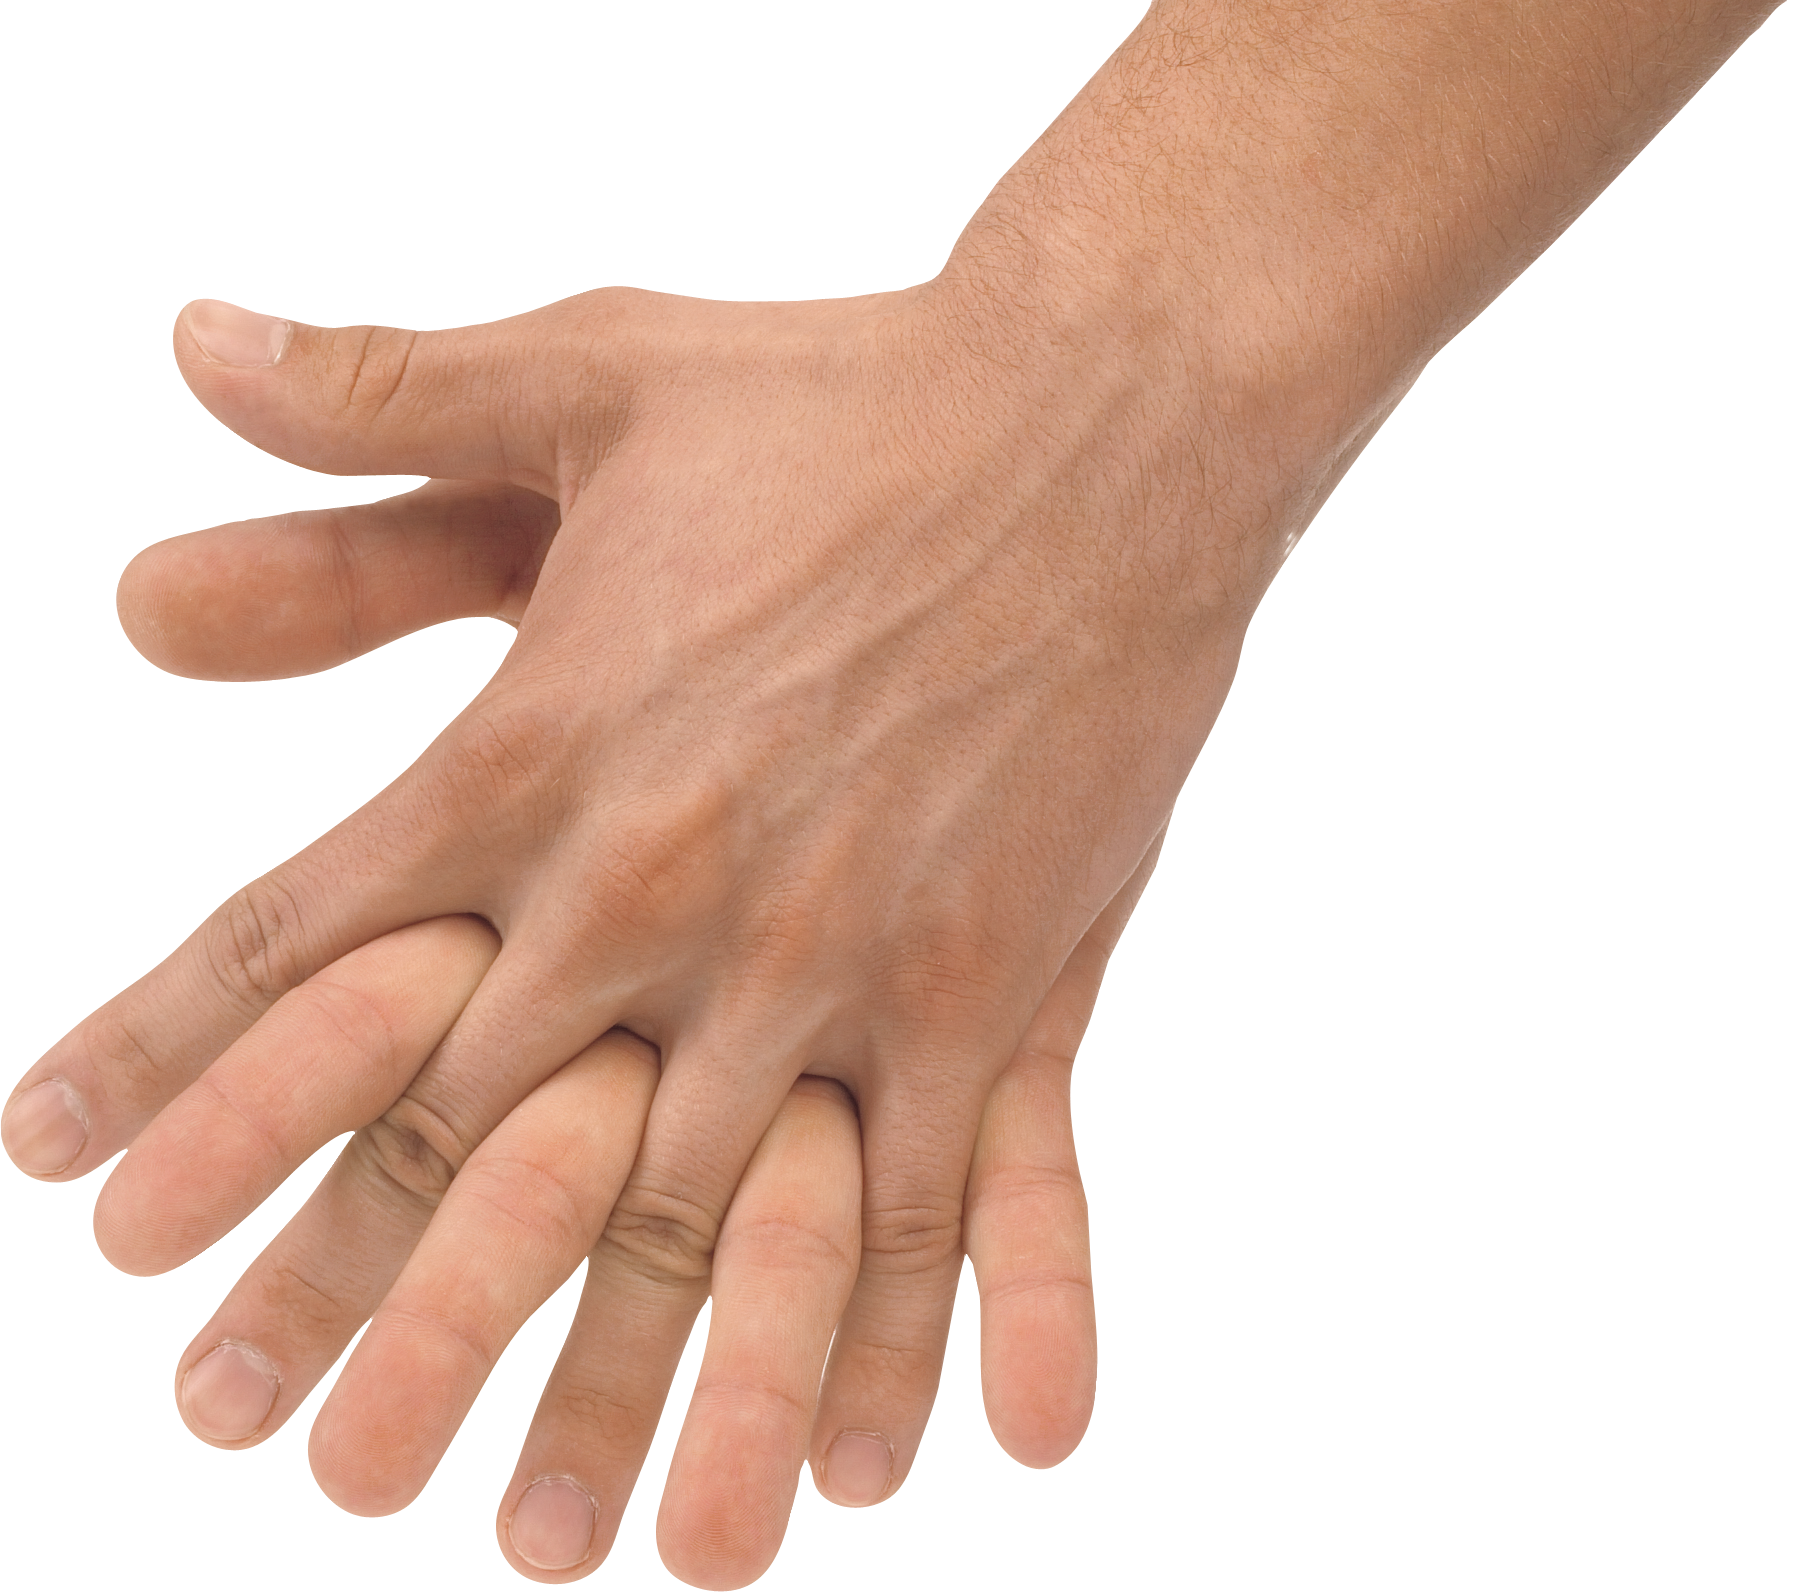 uploads hands hands PNG957 43